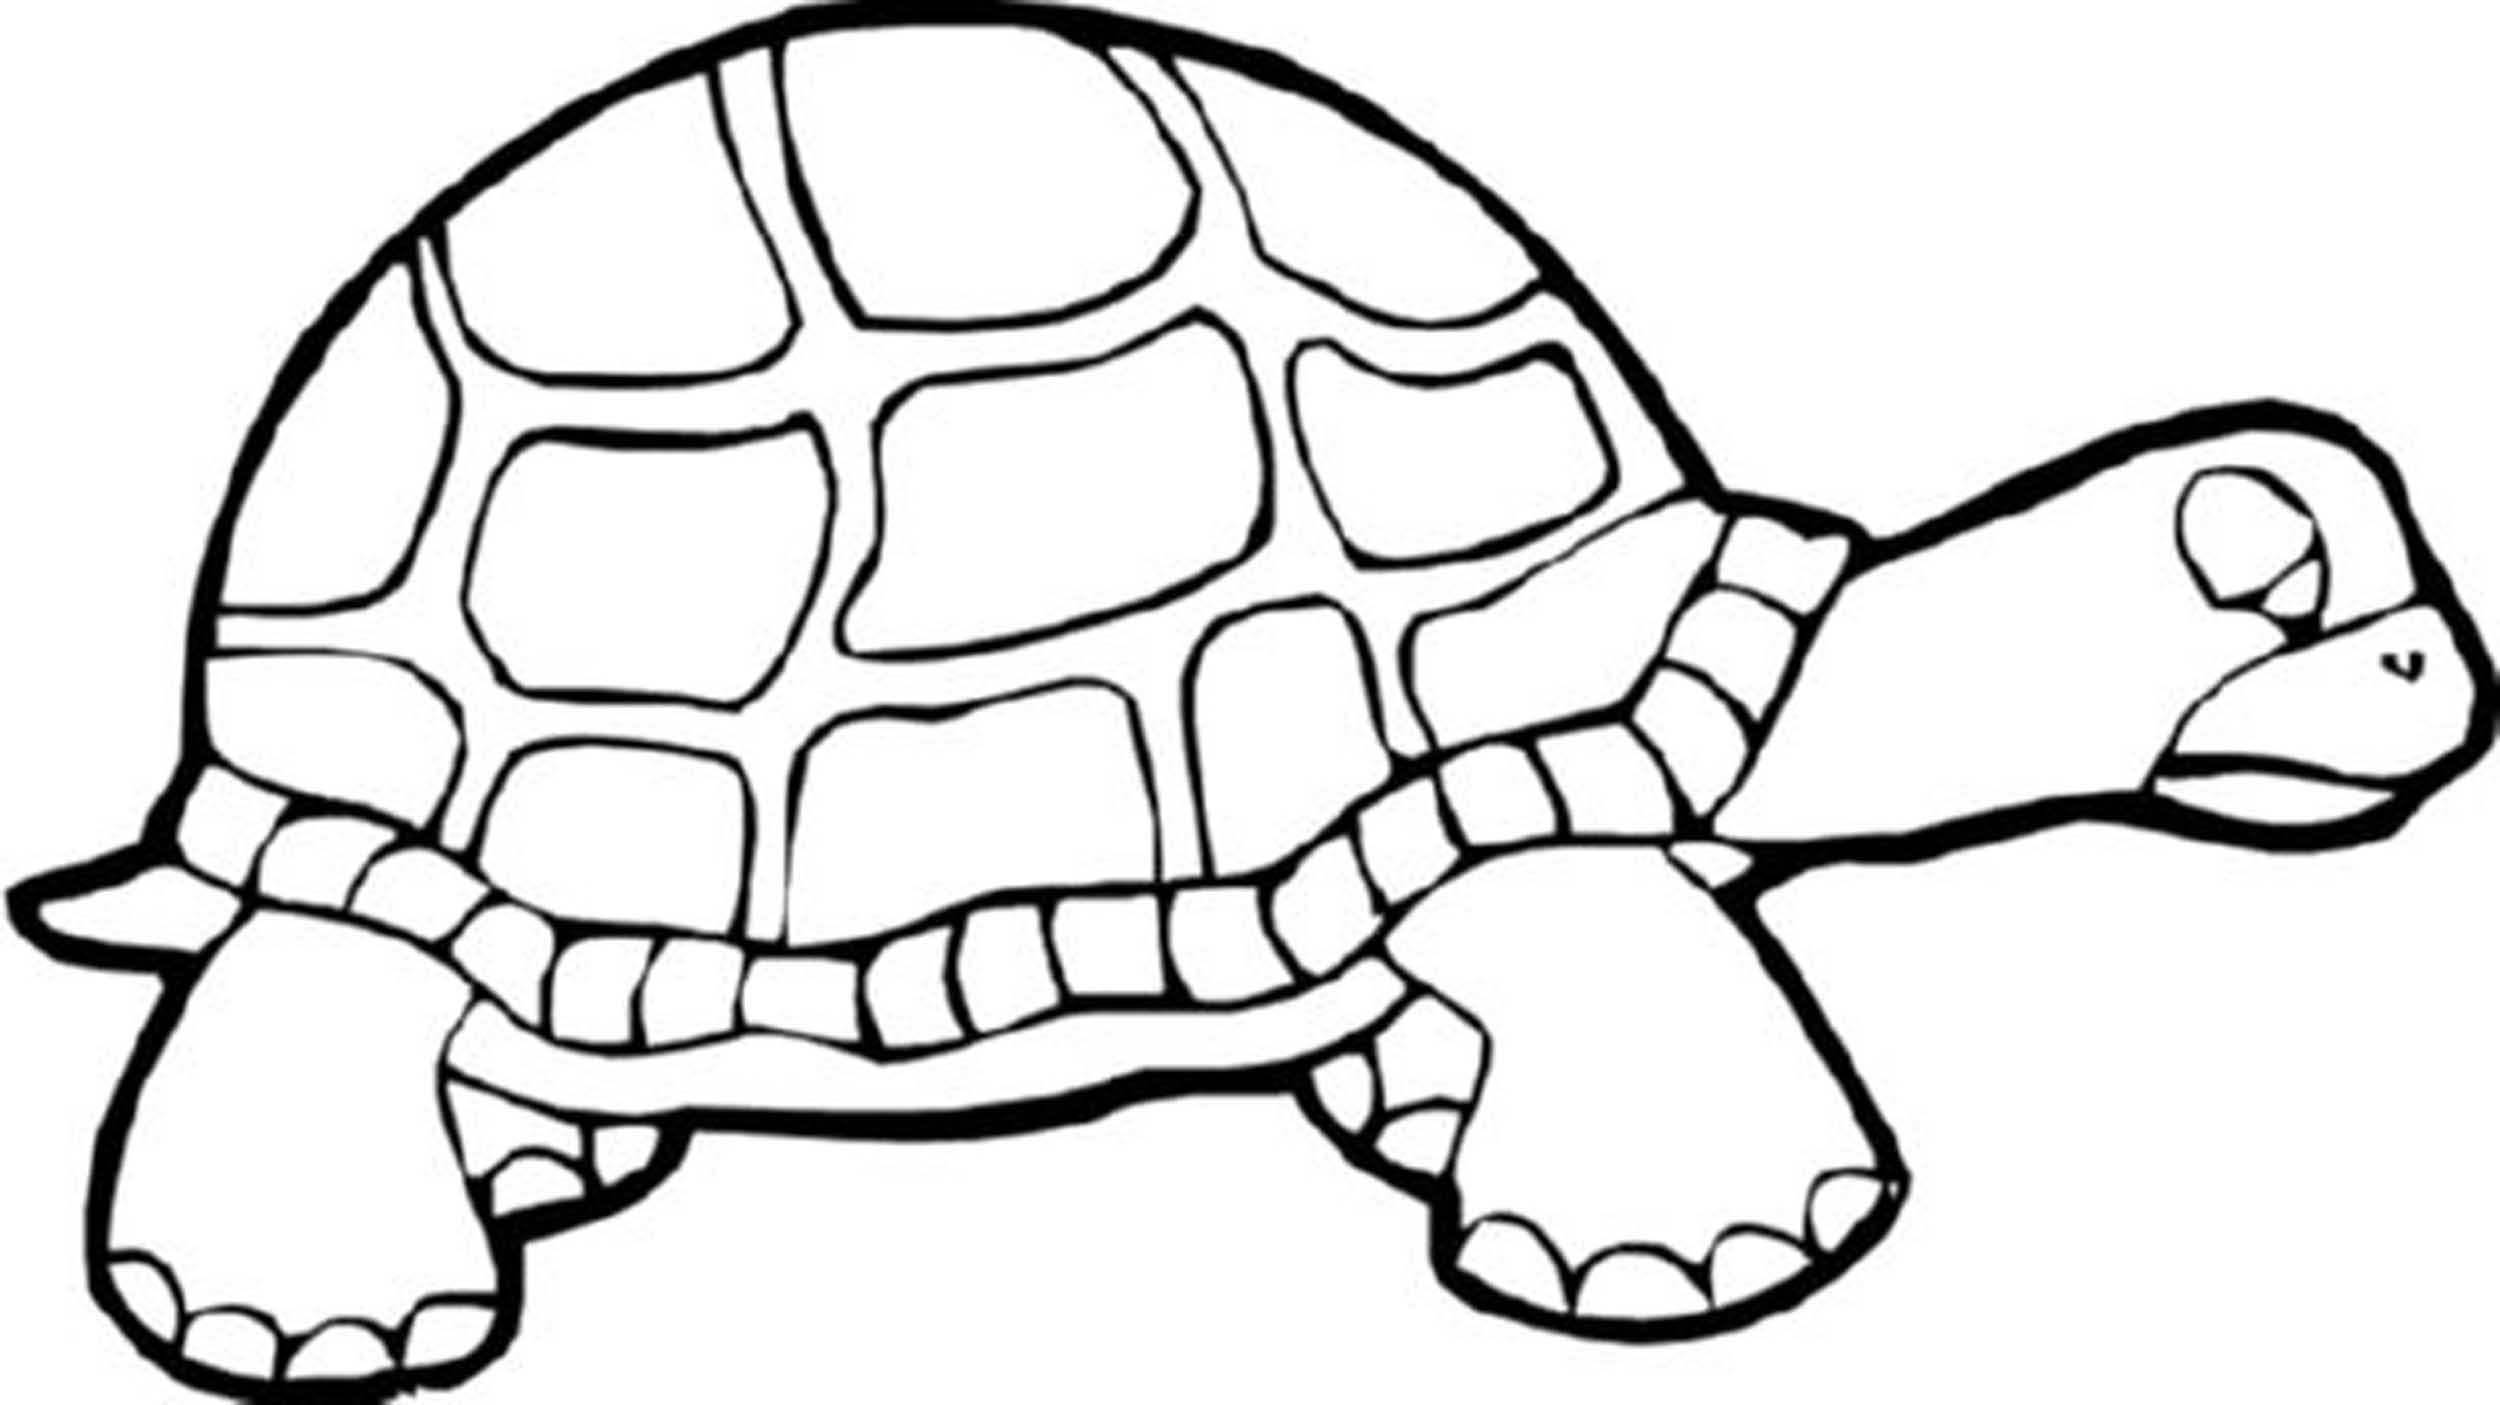 turtle coloring book page print download turtle coloring pages as the coloring page book turtle